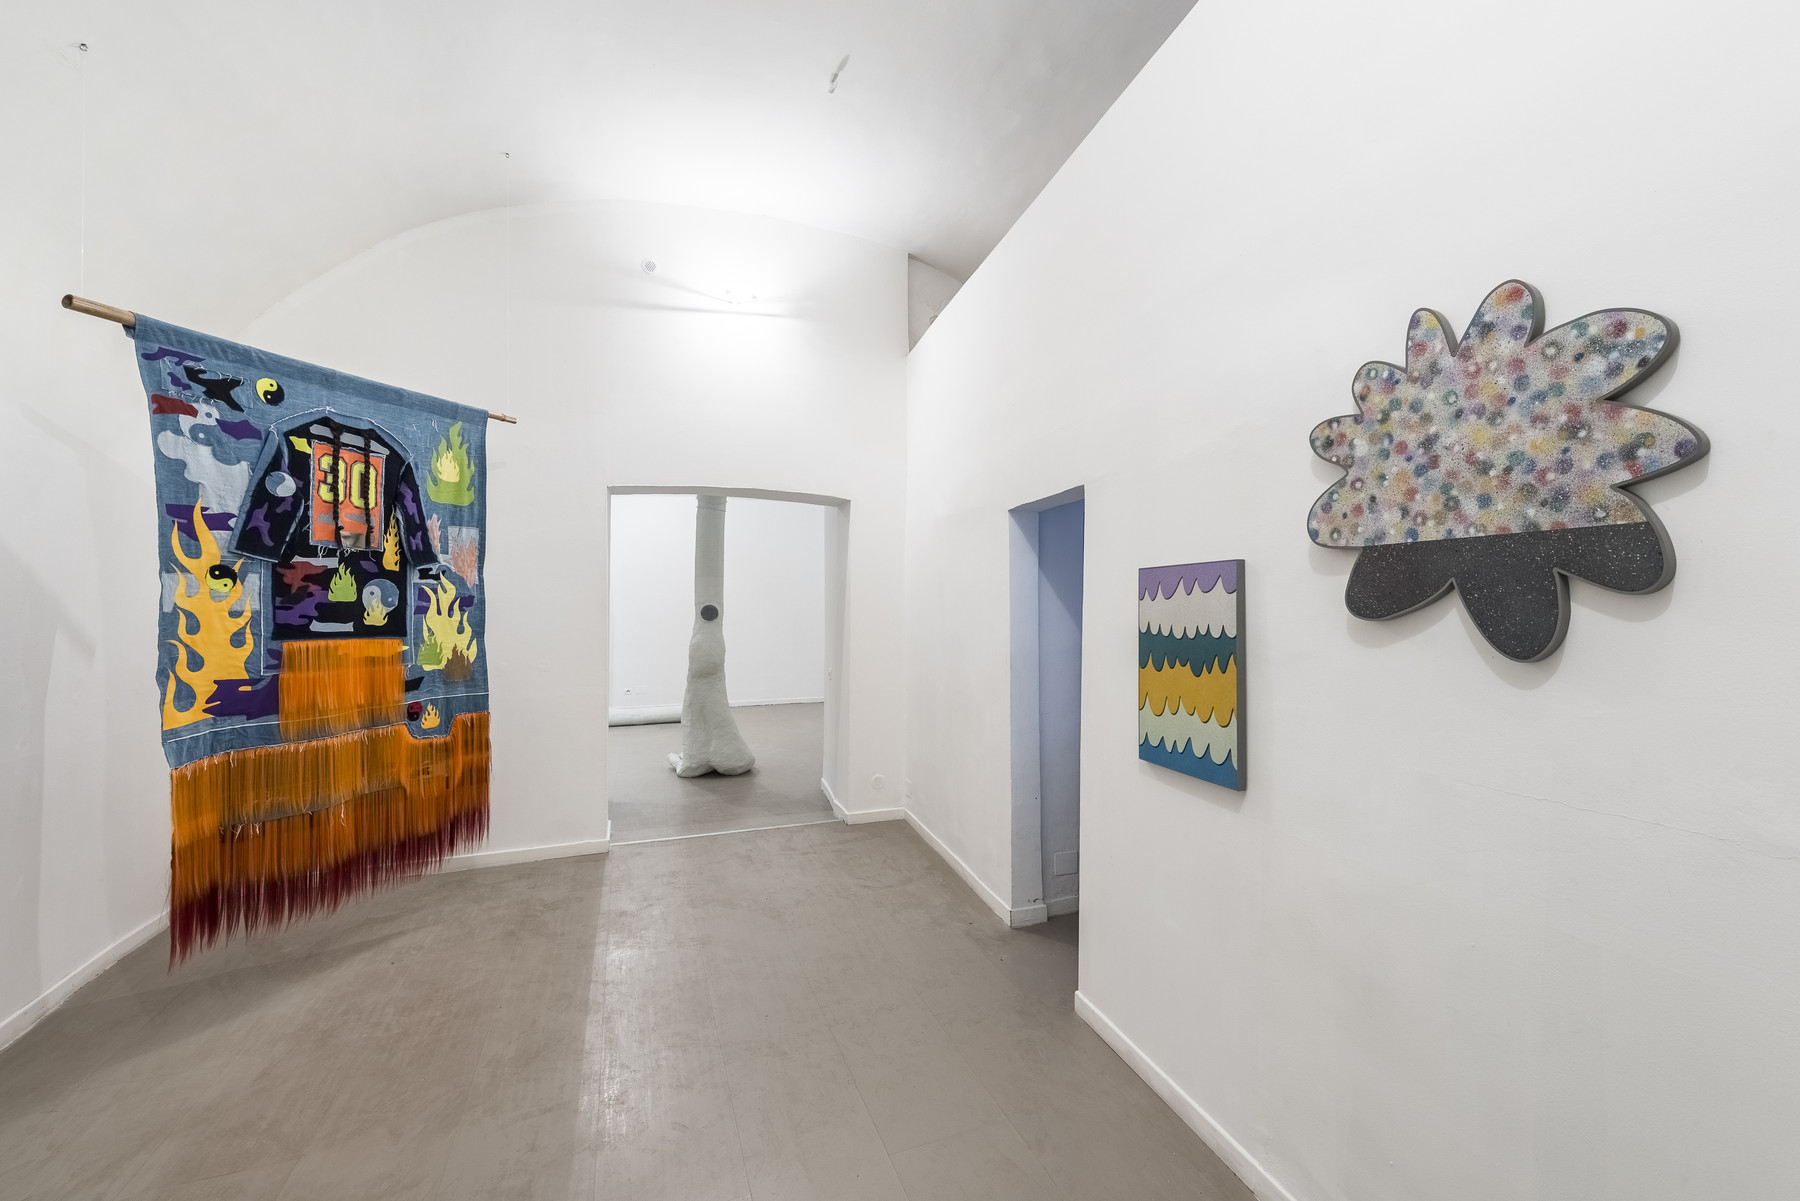 04_Walled Garden In An Insane Eden_2017_Installation View_Room2_z2oSaraZaninGallery_Roma